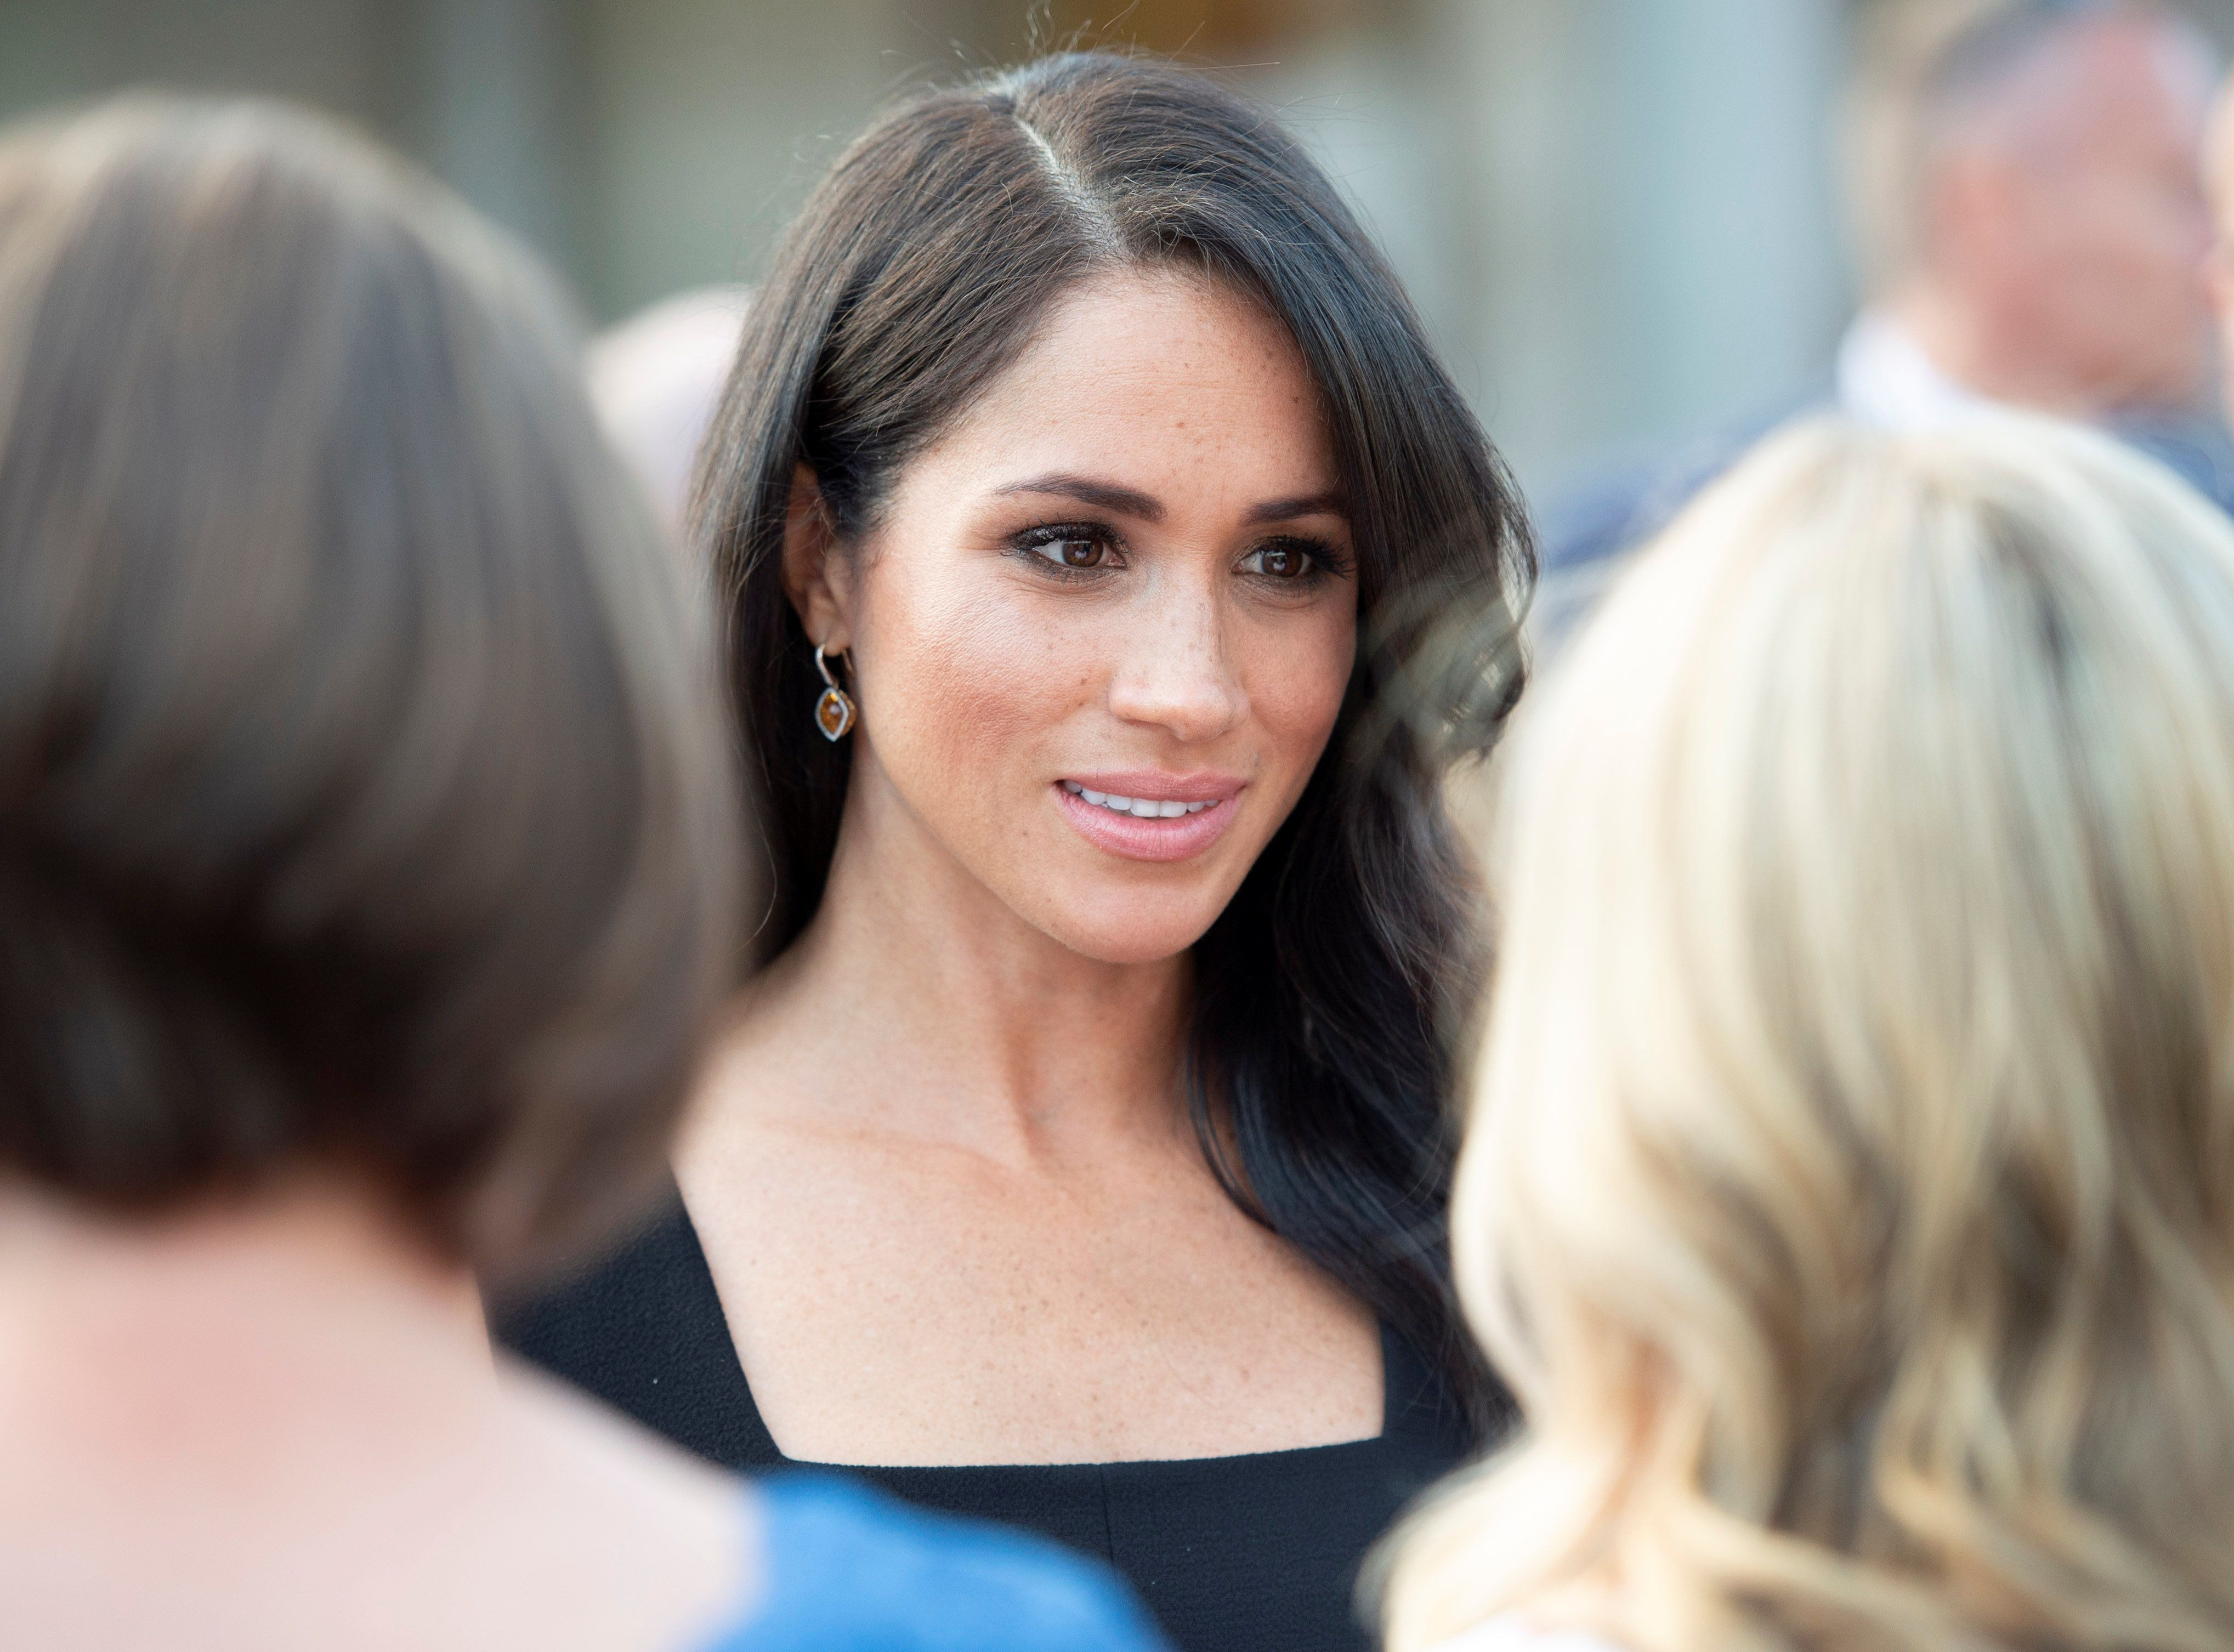 Is Meghan Markle struggling with her new life as a royal?